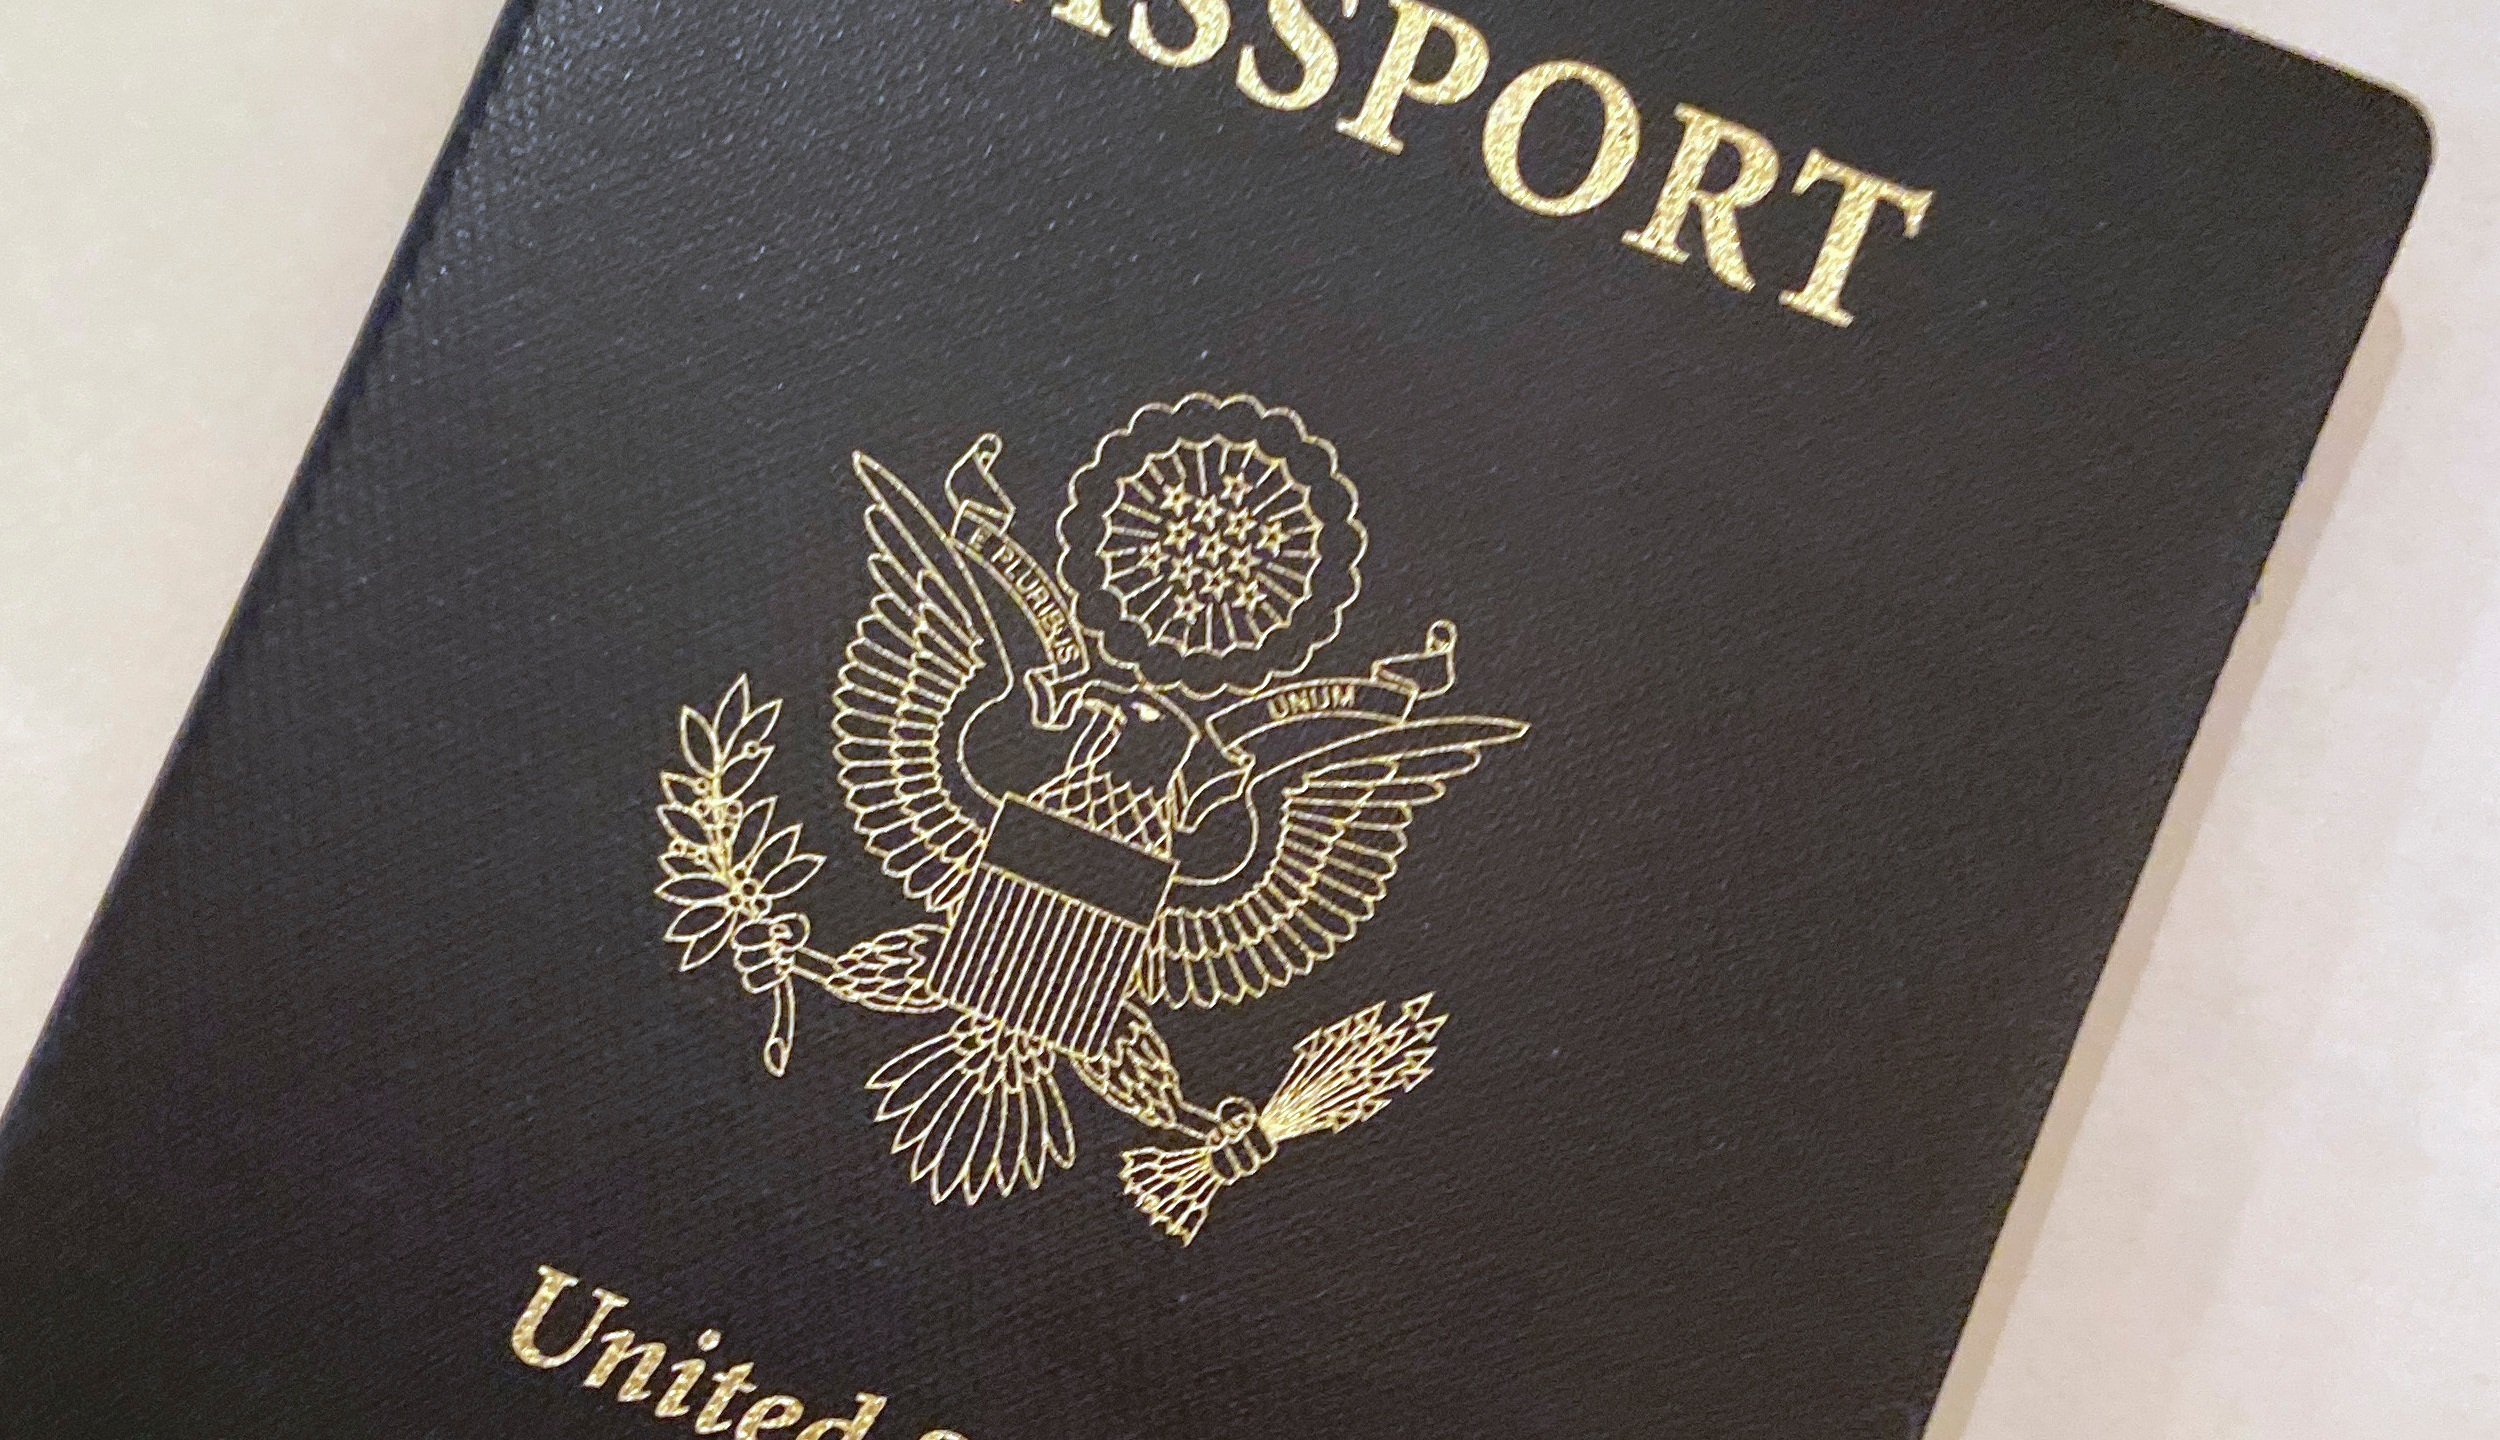 """This May 25, 2021 file photo shows a U.S. Passport cover in Washington. The United States has issued its first passport with an """"X"""" gender designation, a milestone in the recognition of the rights of people who don't identify as male or female. (AP Photo/Eileen Putman)"""